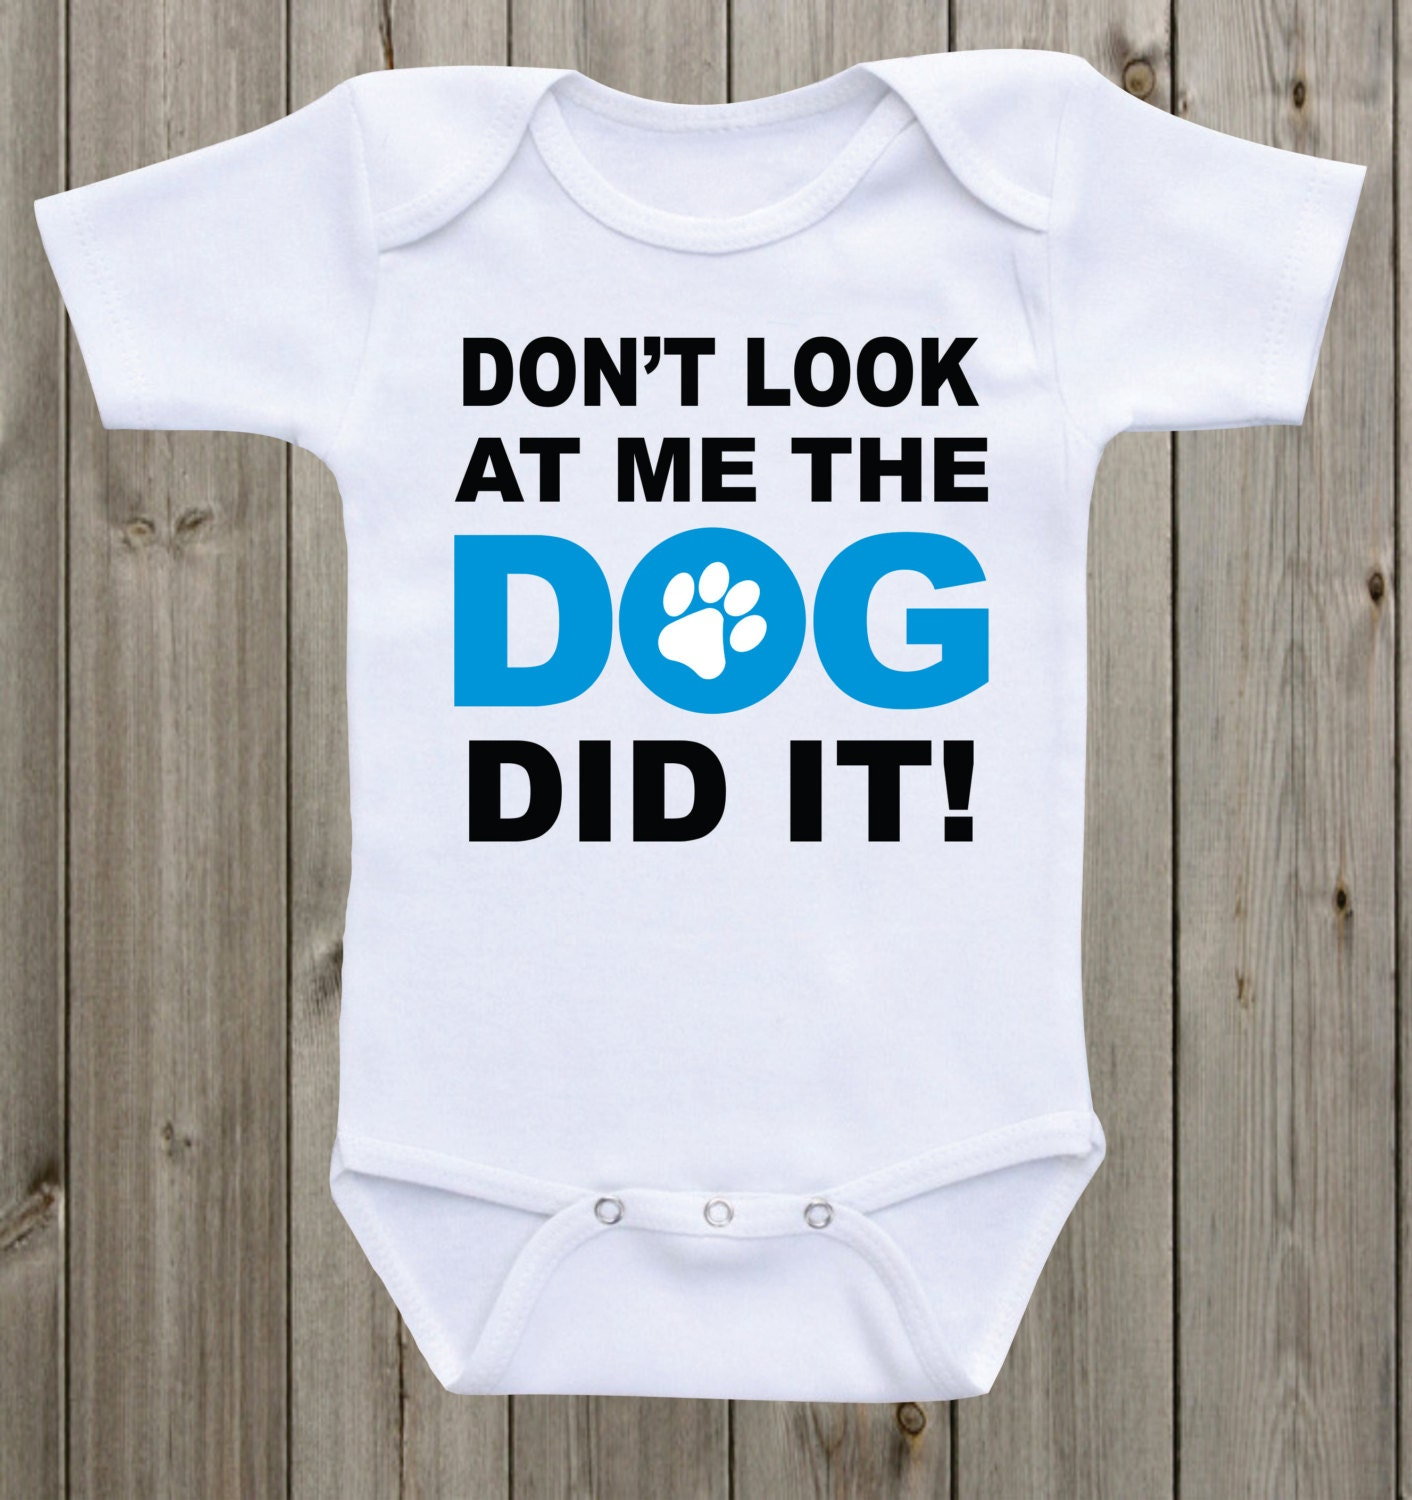 The Dog Did It Baby Onesie Funny Onesie Funny Baby Onesie Funny Baby